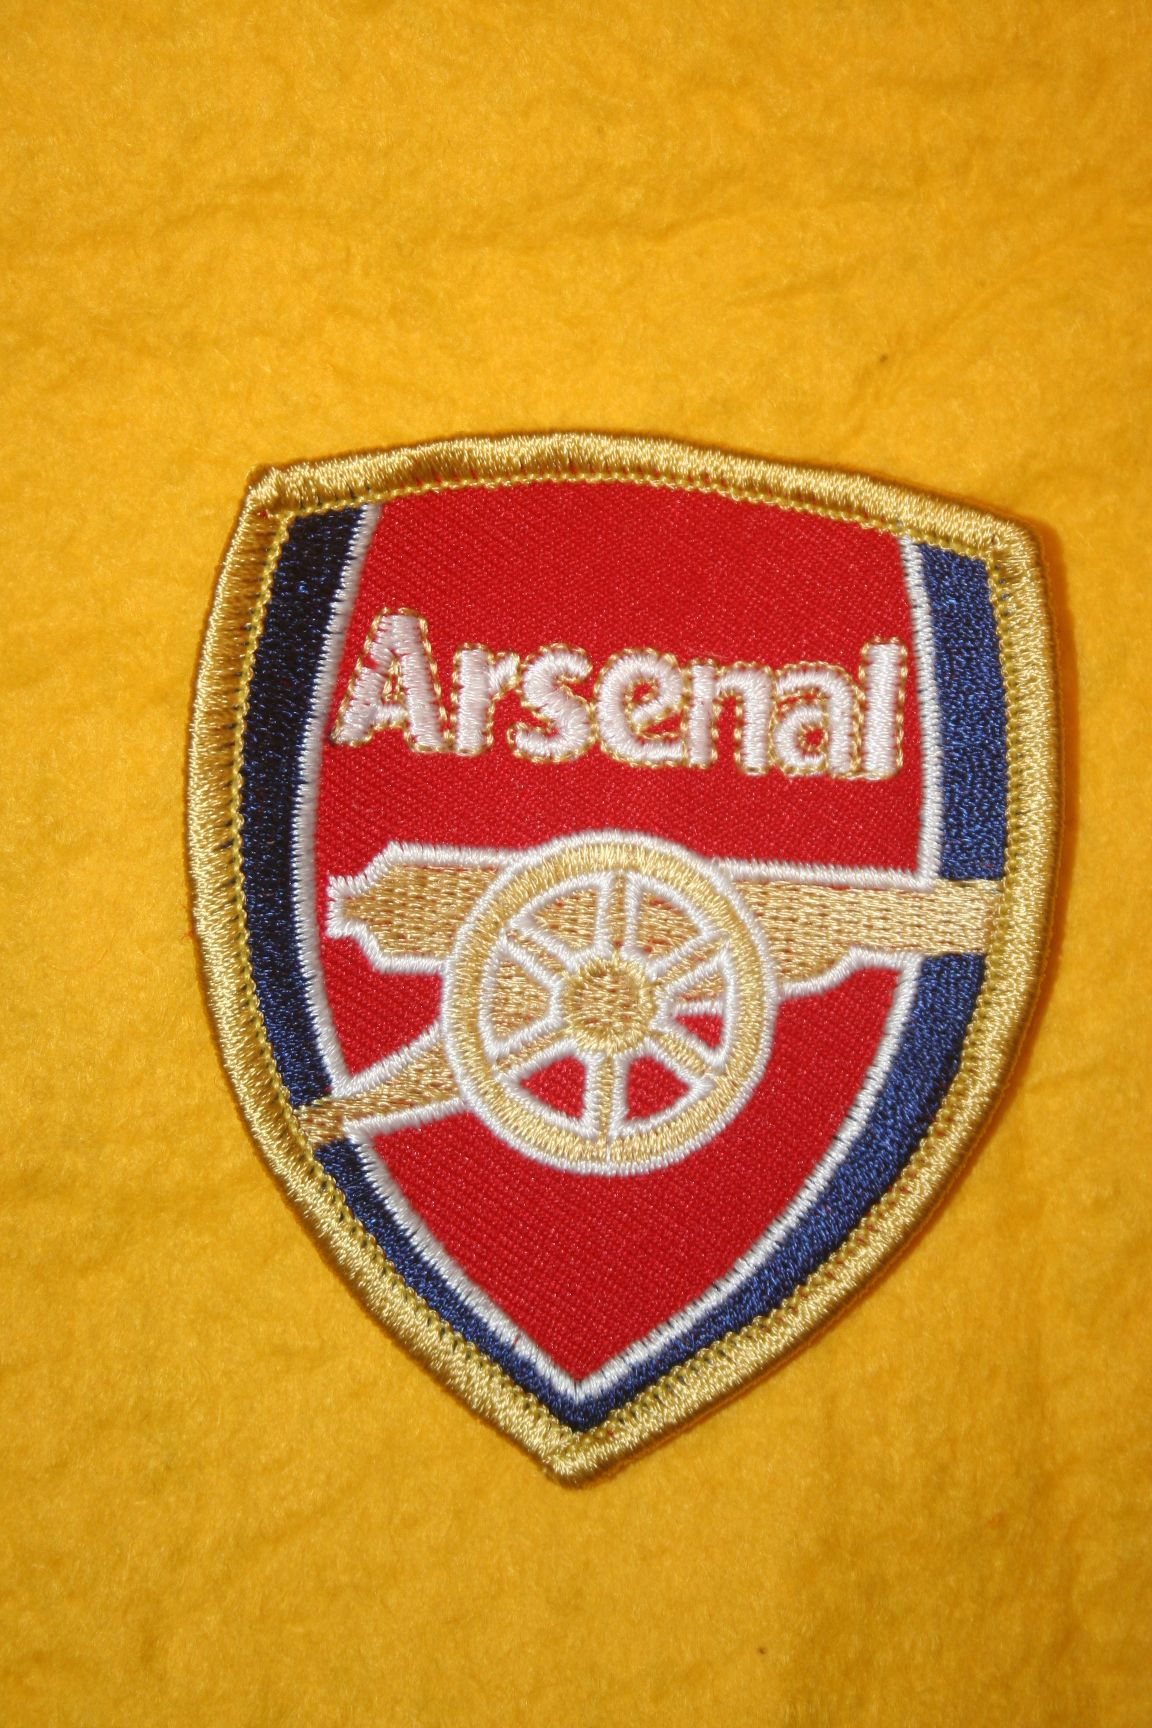 3b94398ca32f0 ARSENAL FC FOOTBALL CLUB PATCH CREST BADGE